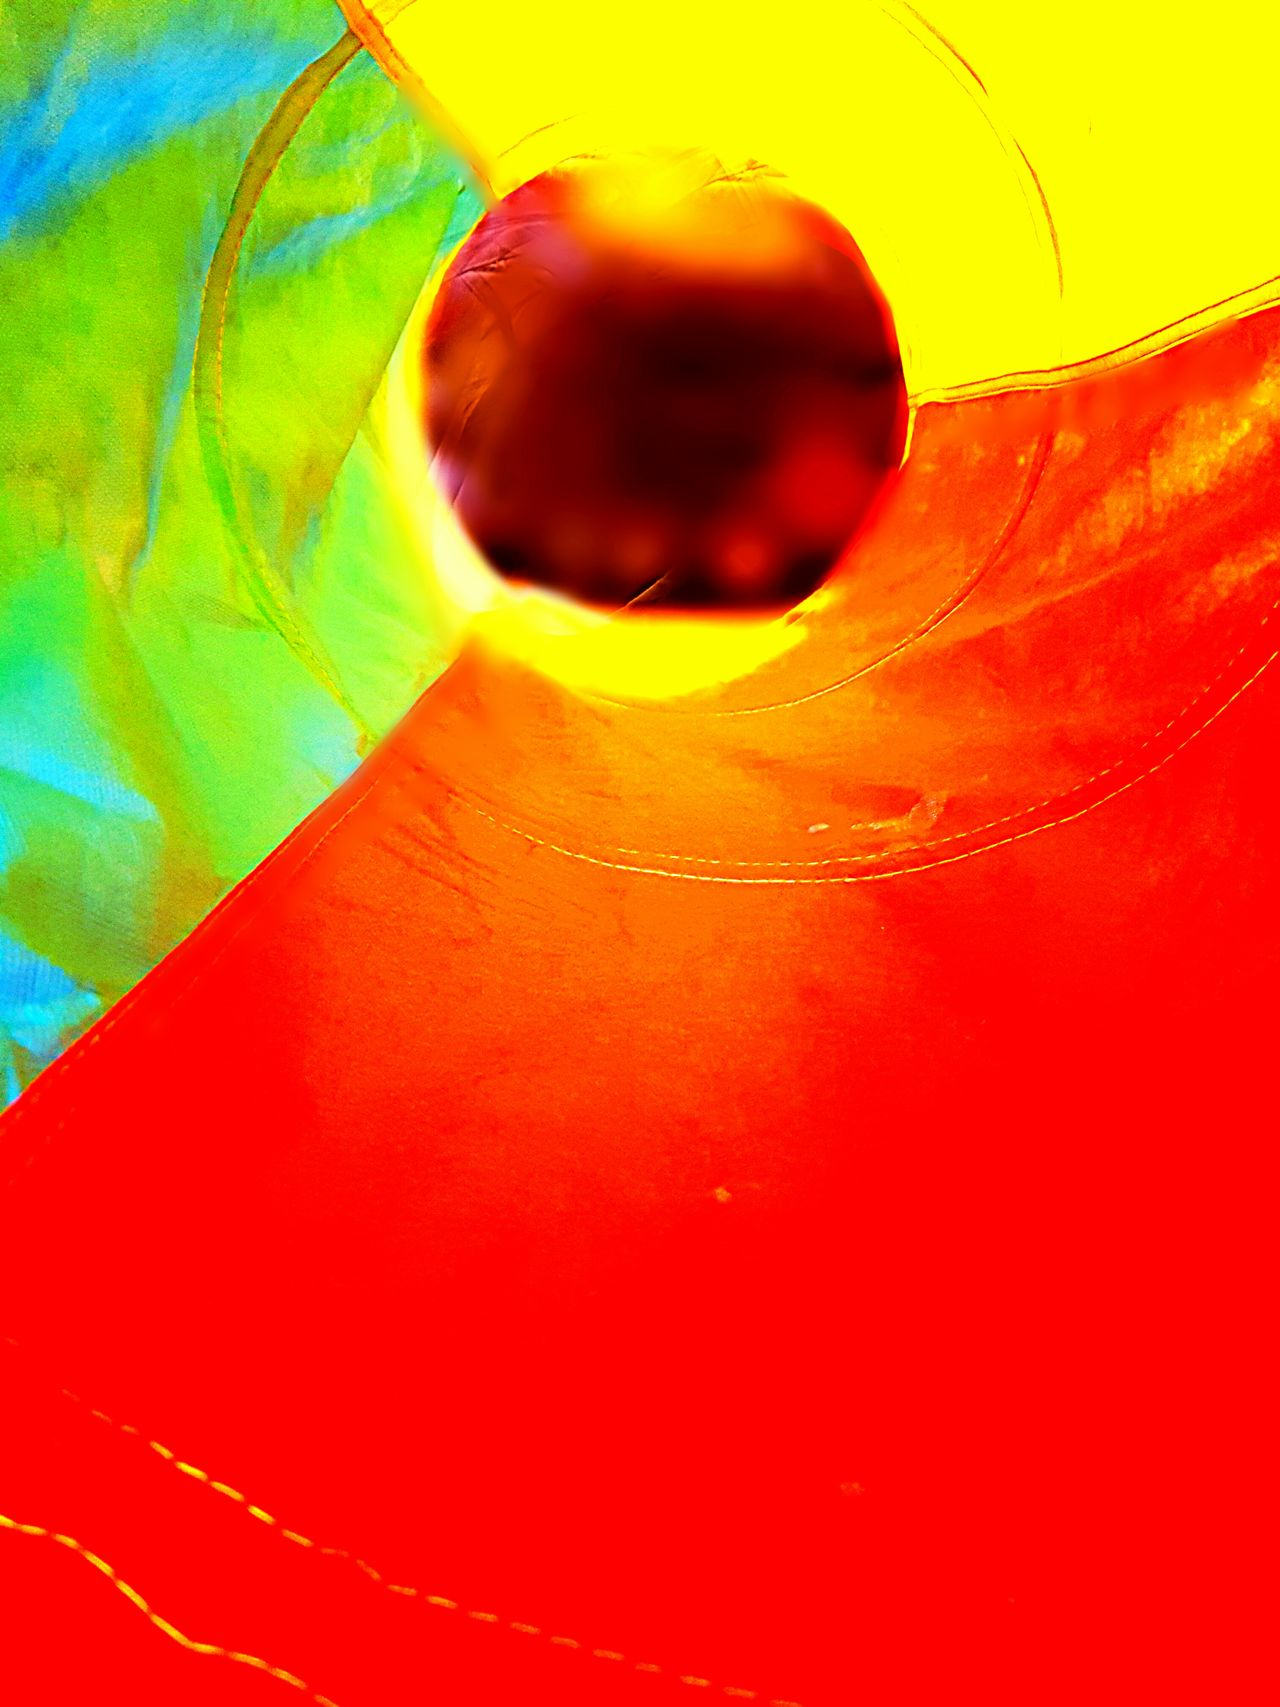 There's light at the end of the tunnel.... Taking Photos Check This Out End Of The Tunnel Light In The Darkness Light At The End Of Tunnel No People Not Serious But Like Bright Colors Bright_and_bold Focused Deep Colors Blurred Sharpened Sound And Vision Spiral Of Love Hapinness